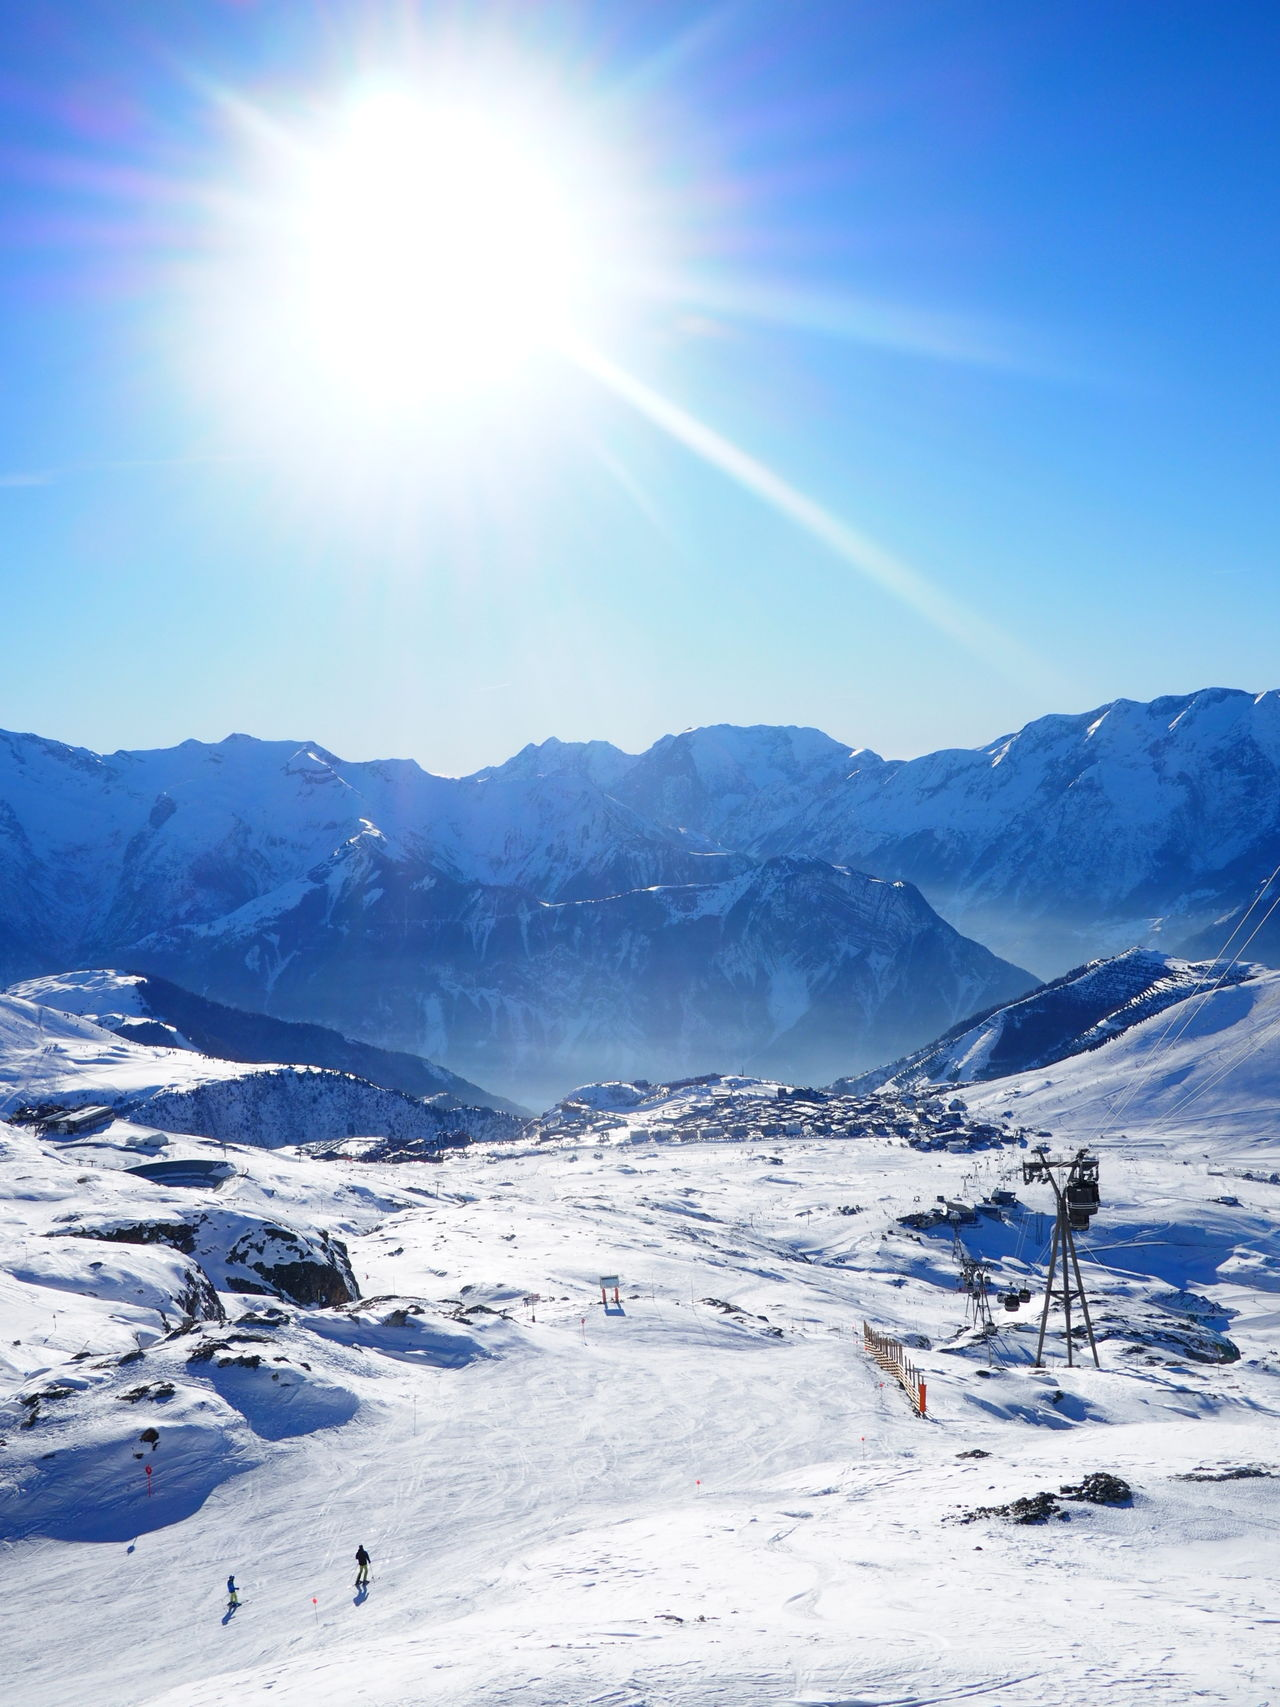 Beauty In Nature Cold Temperature Day Landscape Mountain Mountain Range Nature No People Outdoors Scenics Ski Ski Resort  Skiing Sky Snow Snowboard Snowboarding Snowcapped Mountain Sun Sunbeam Sunlight Tranquil Scene Winter Winter Sport Winter Sports